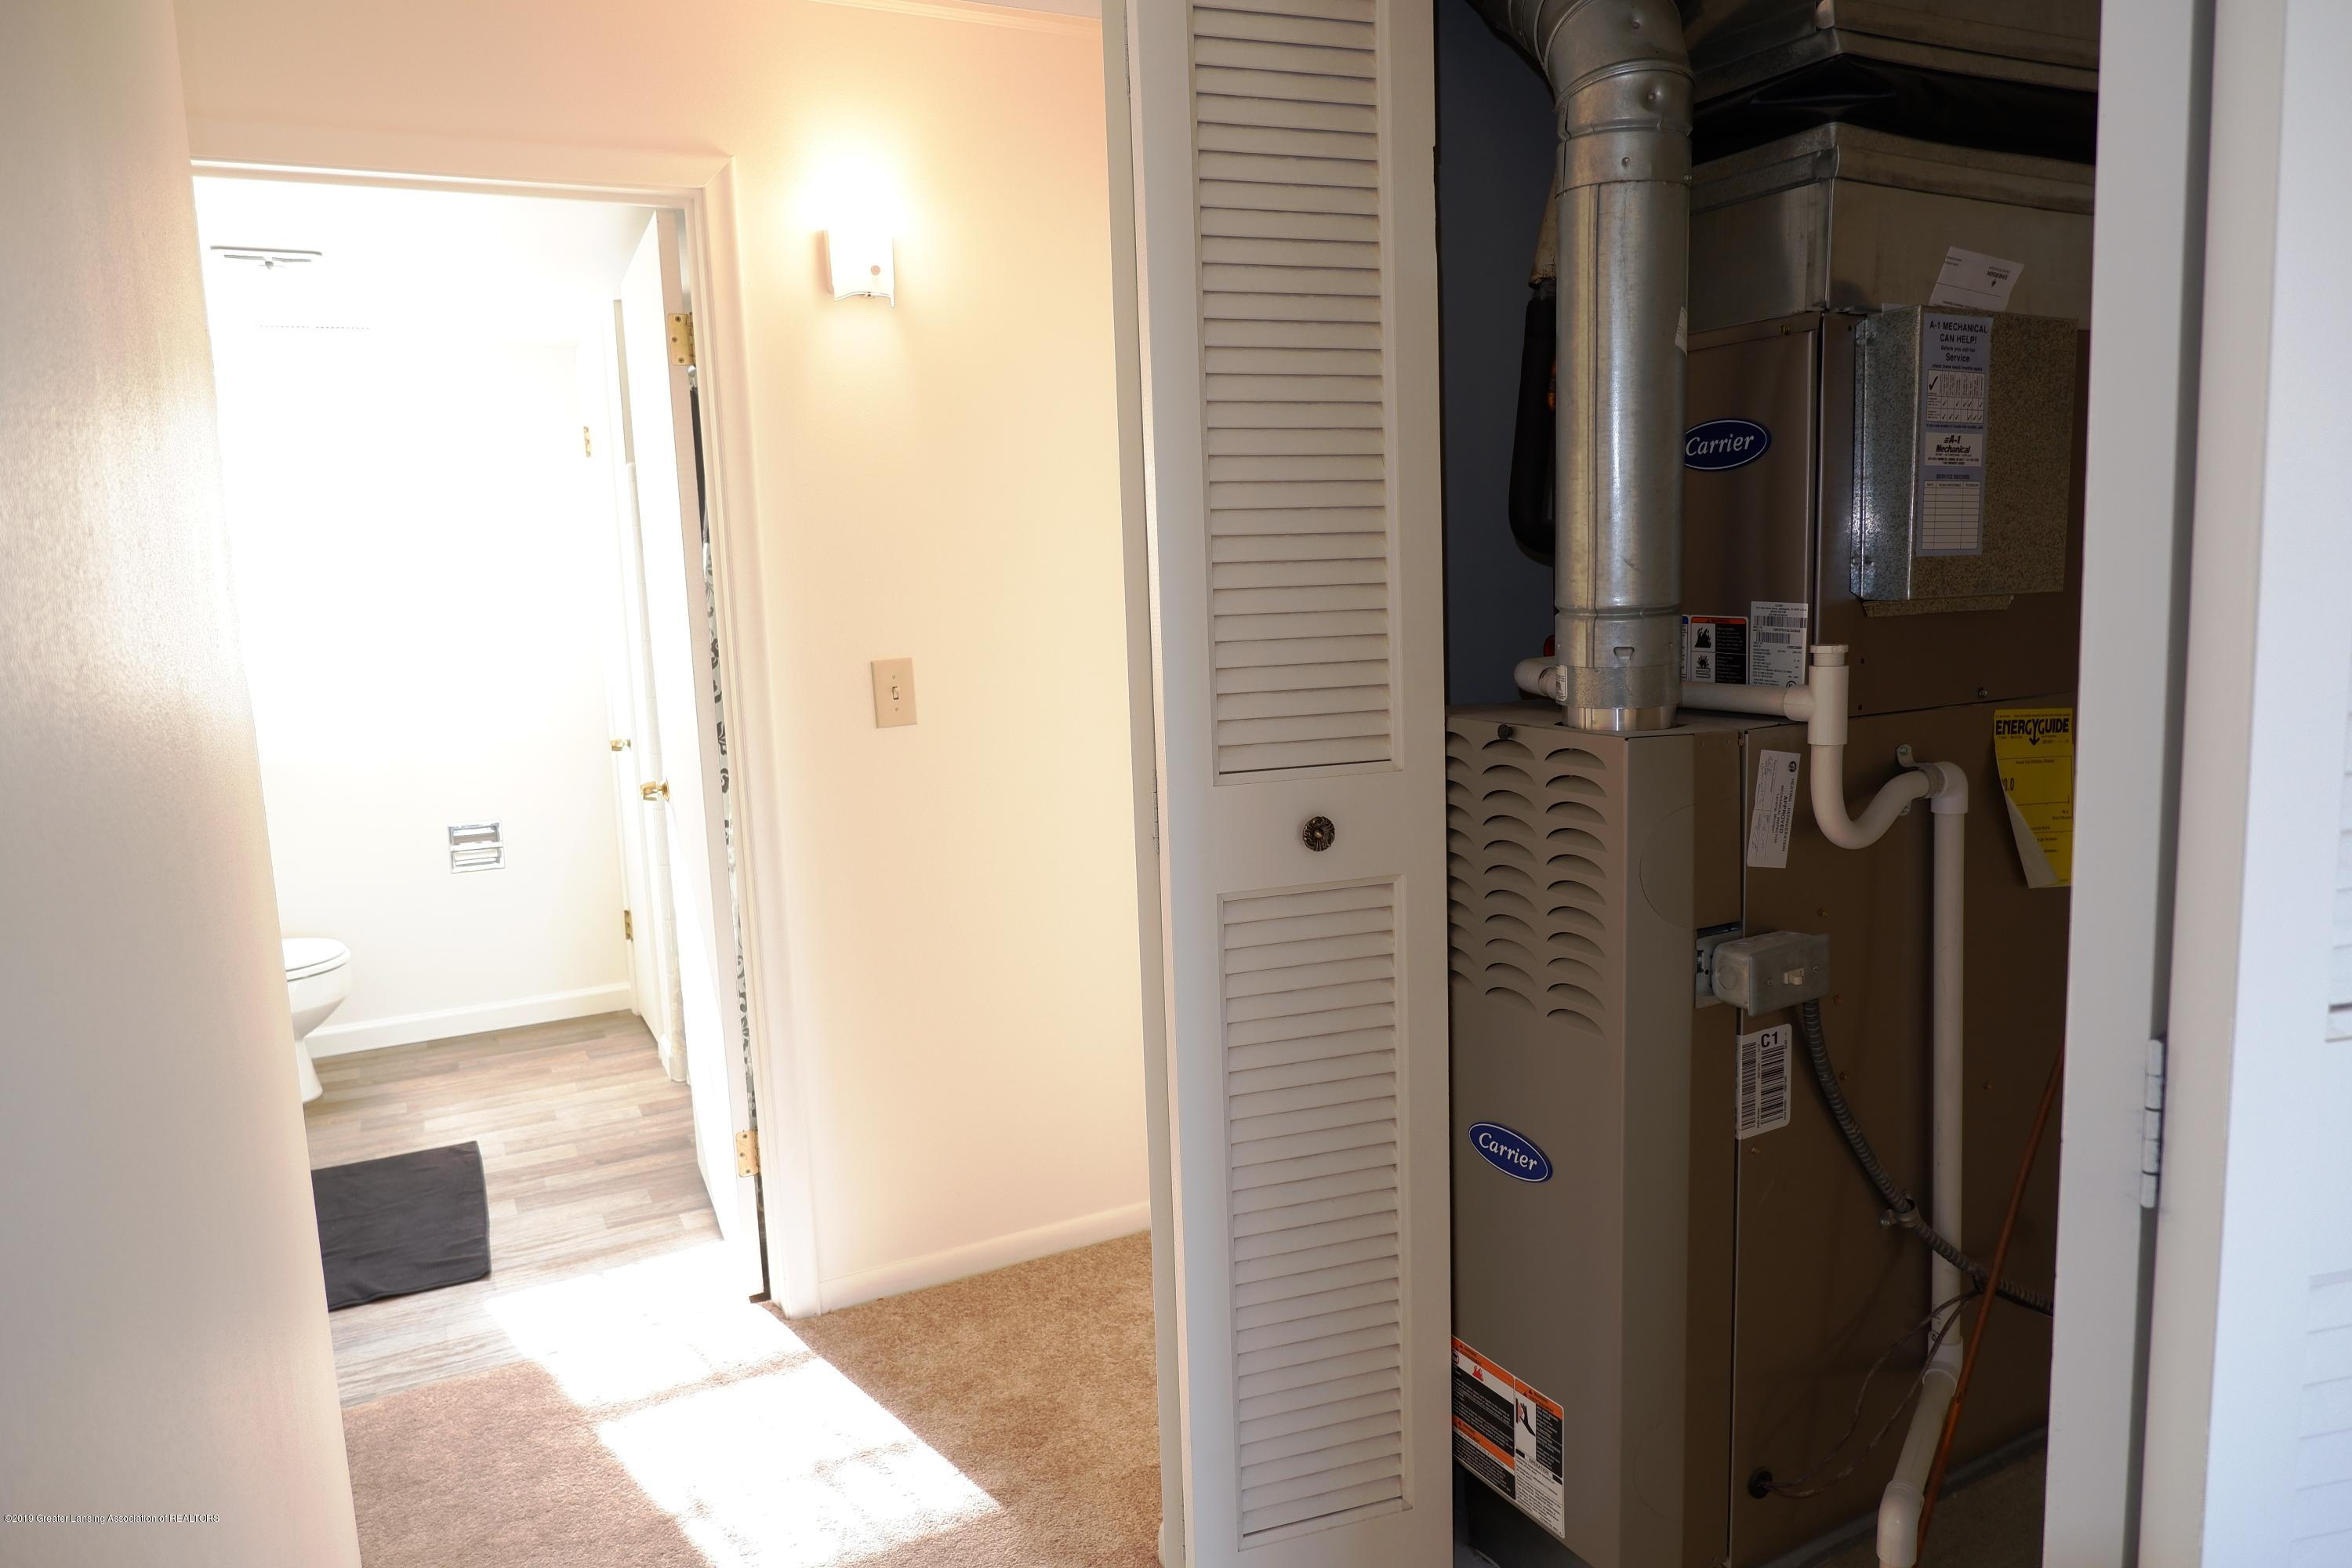 3333 Moores River Dr Apt 508 - Storage closet/furnace room - 23